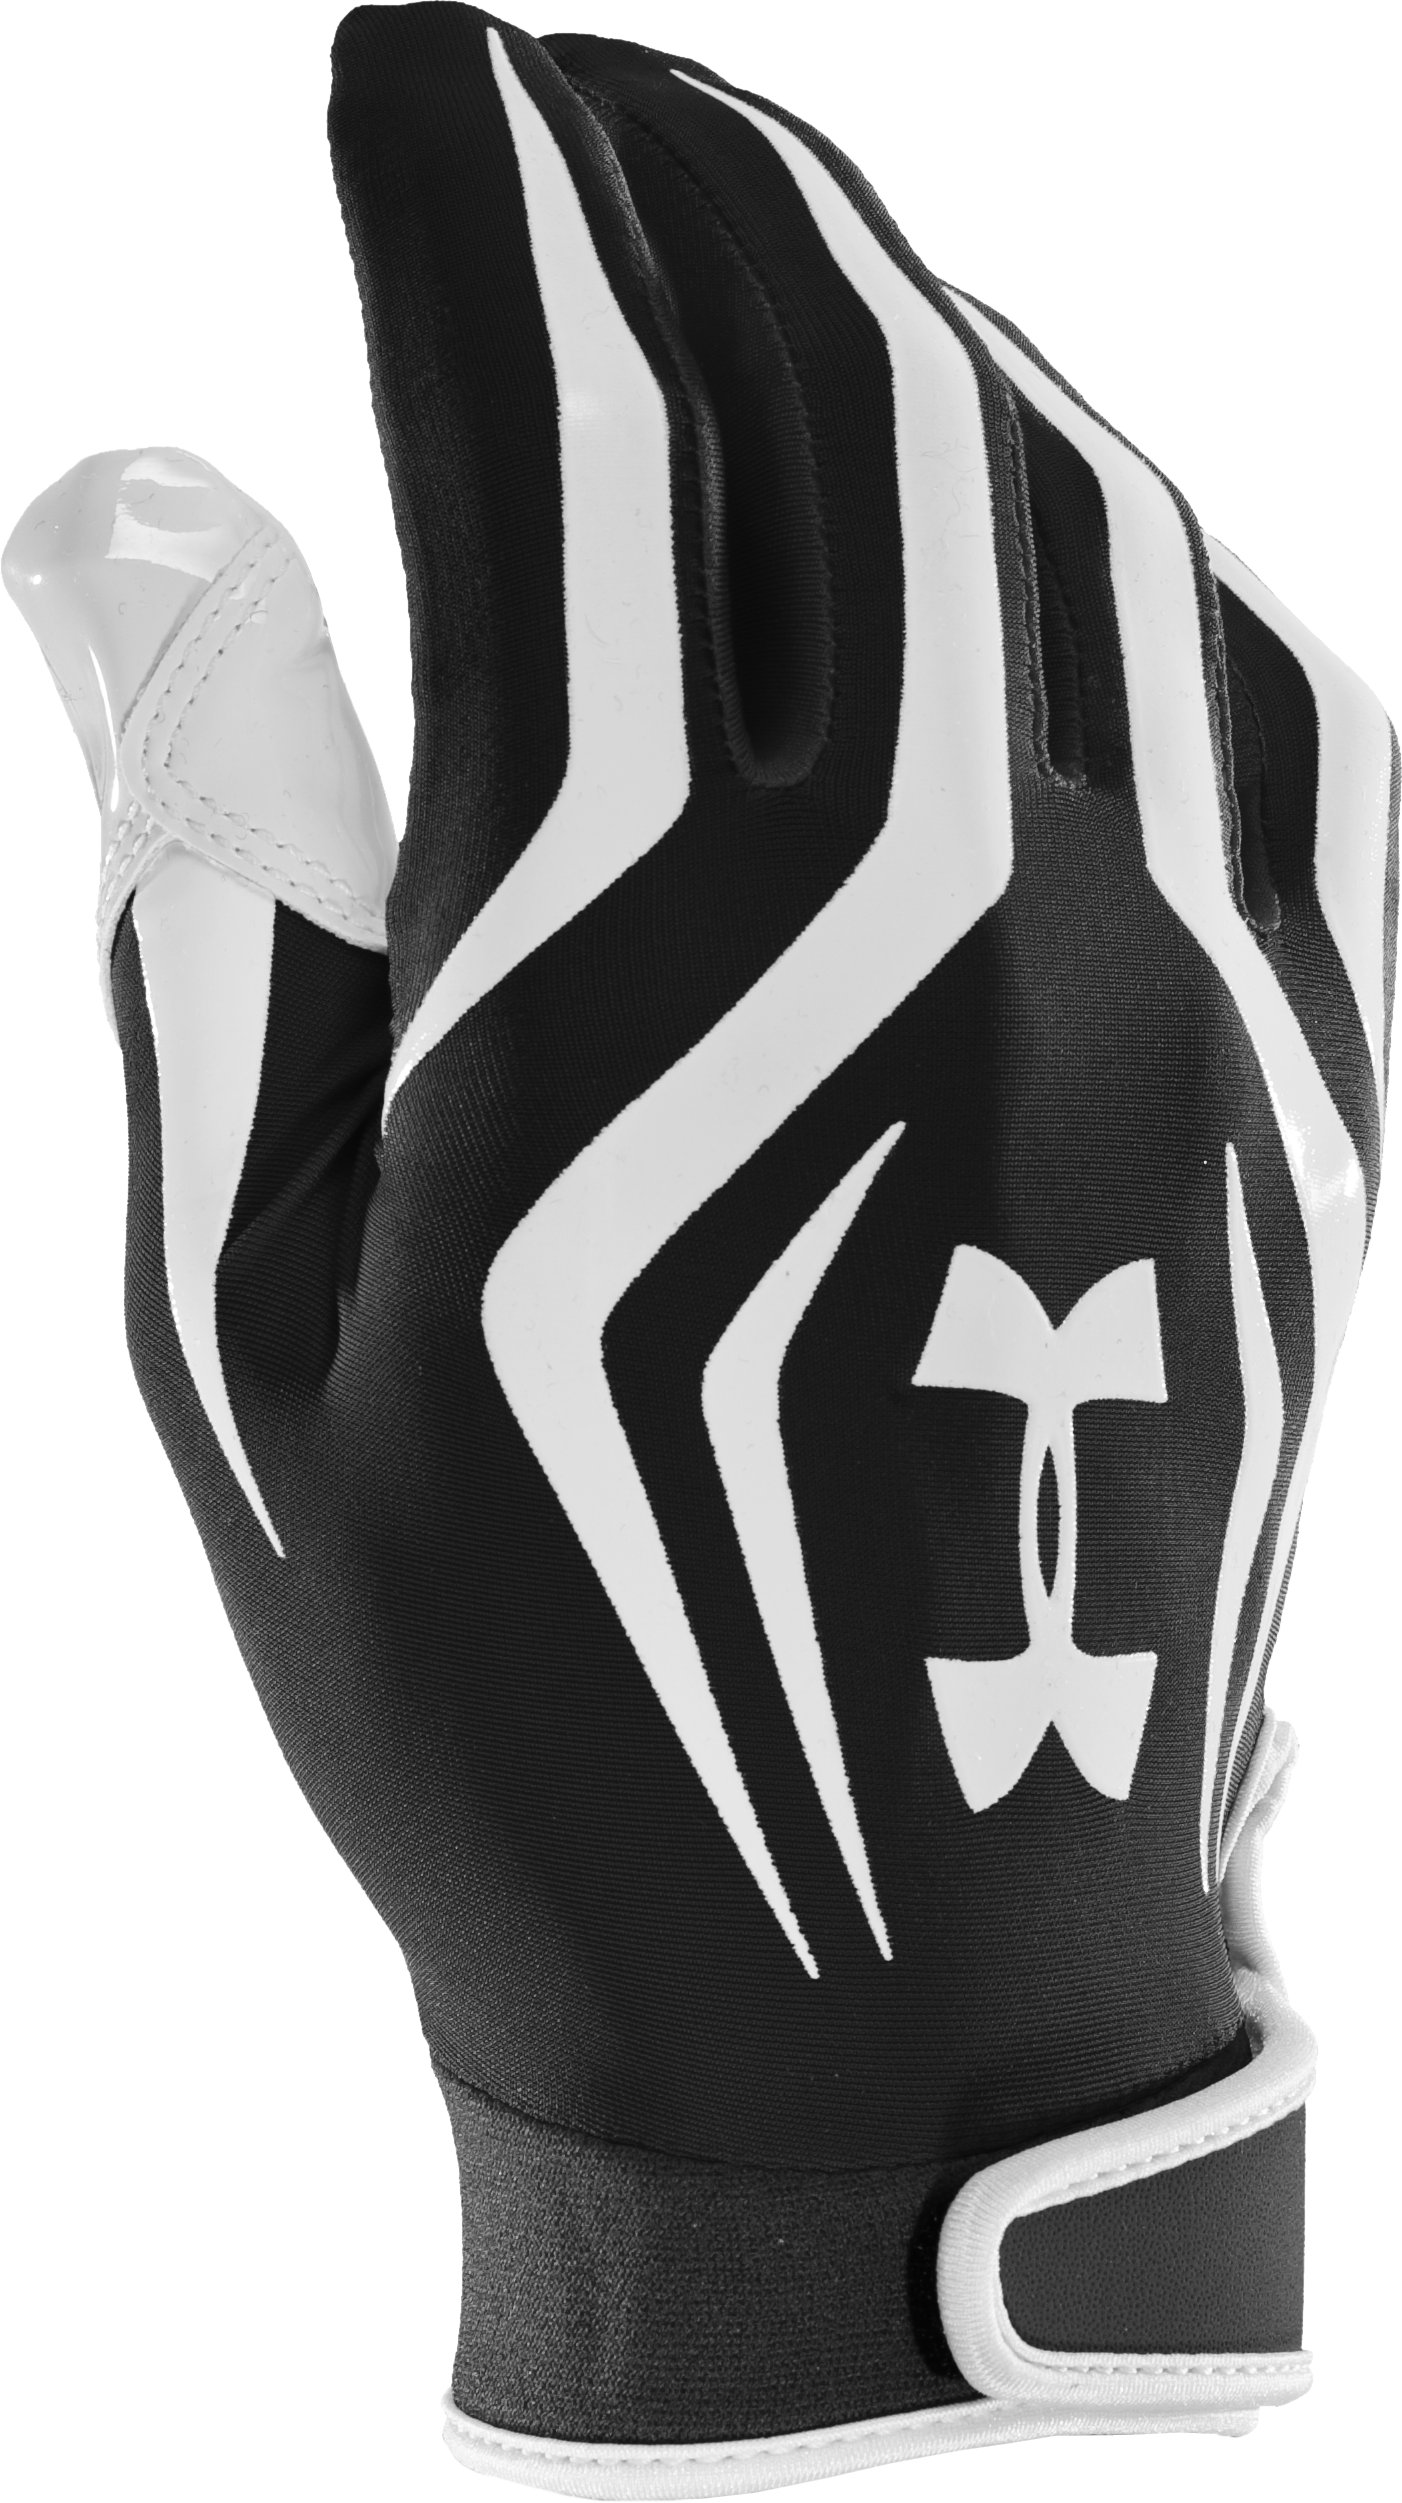 Youth F2 Football Gloves, Black